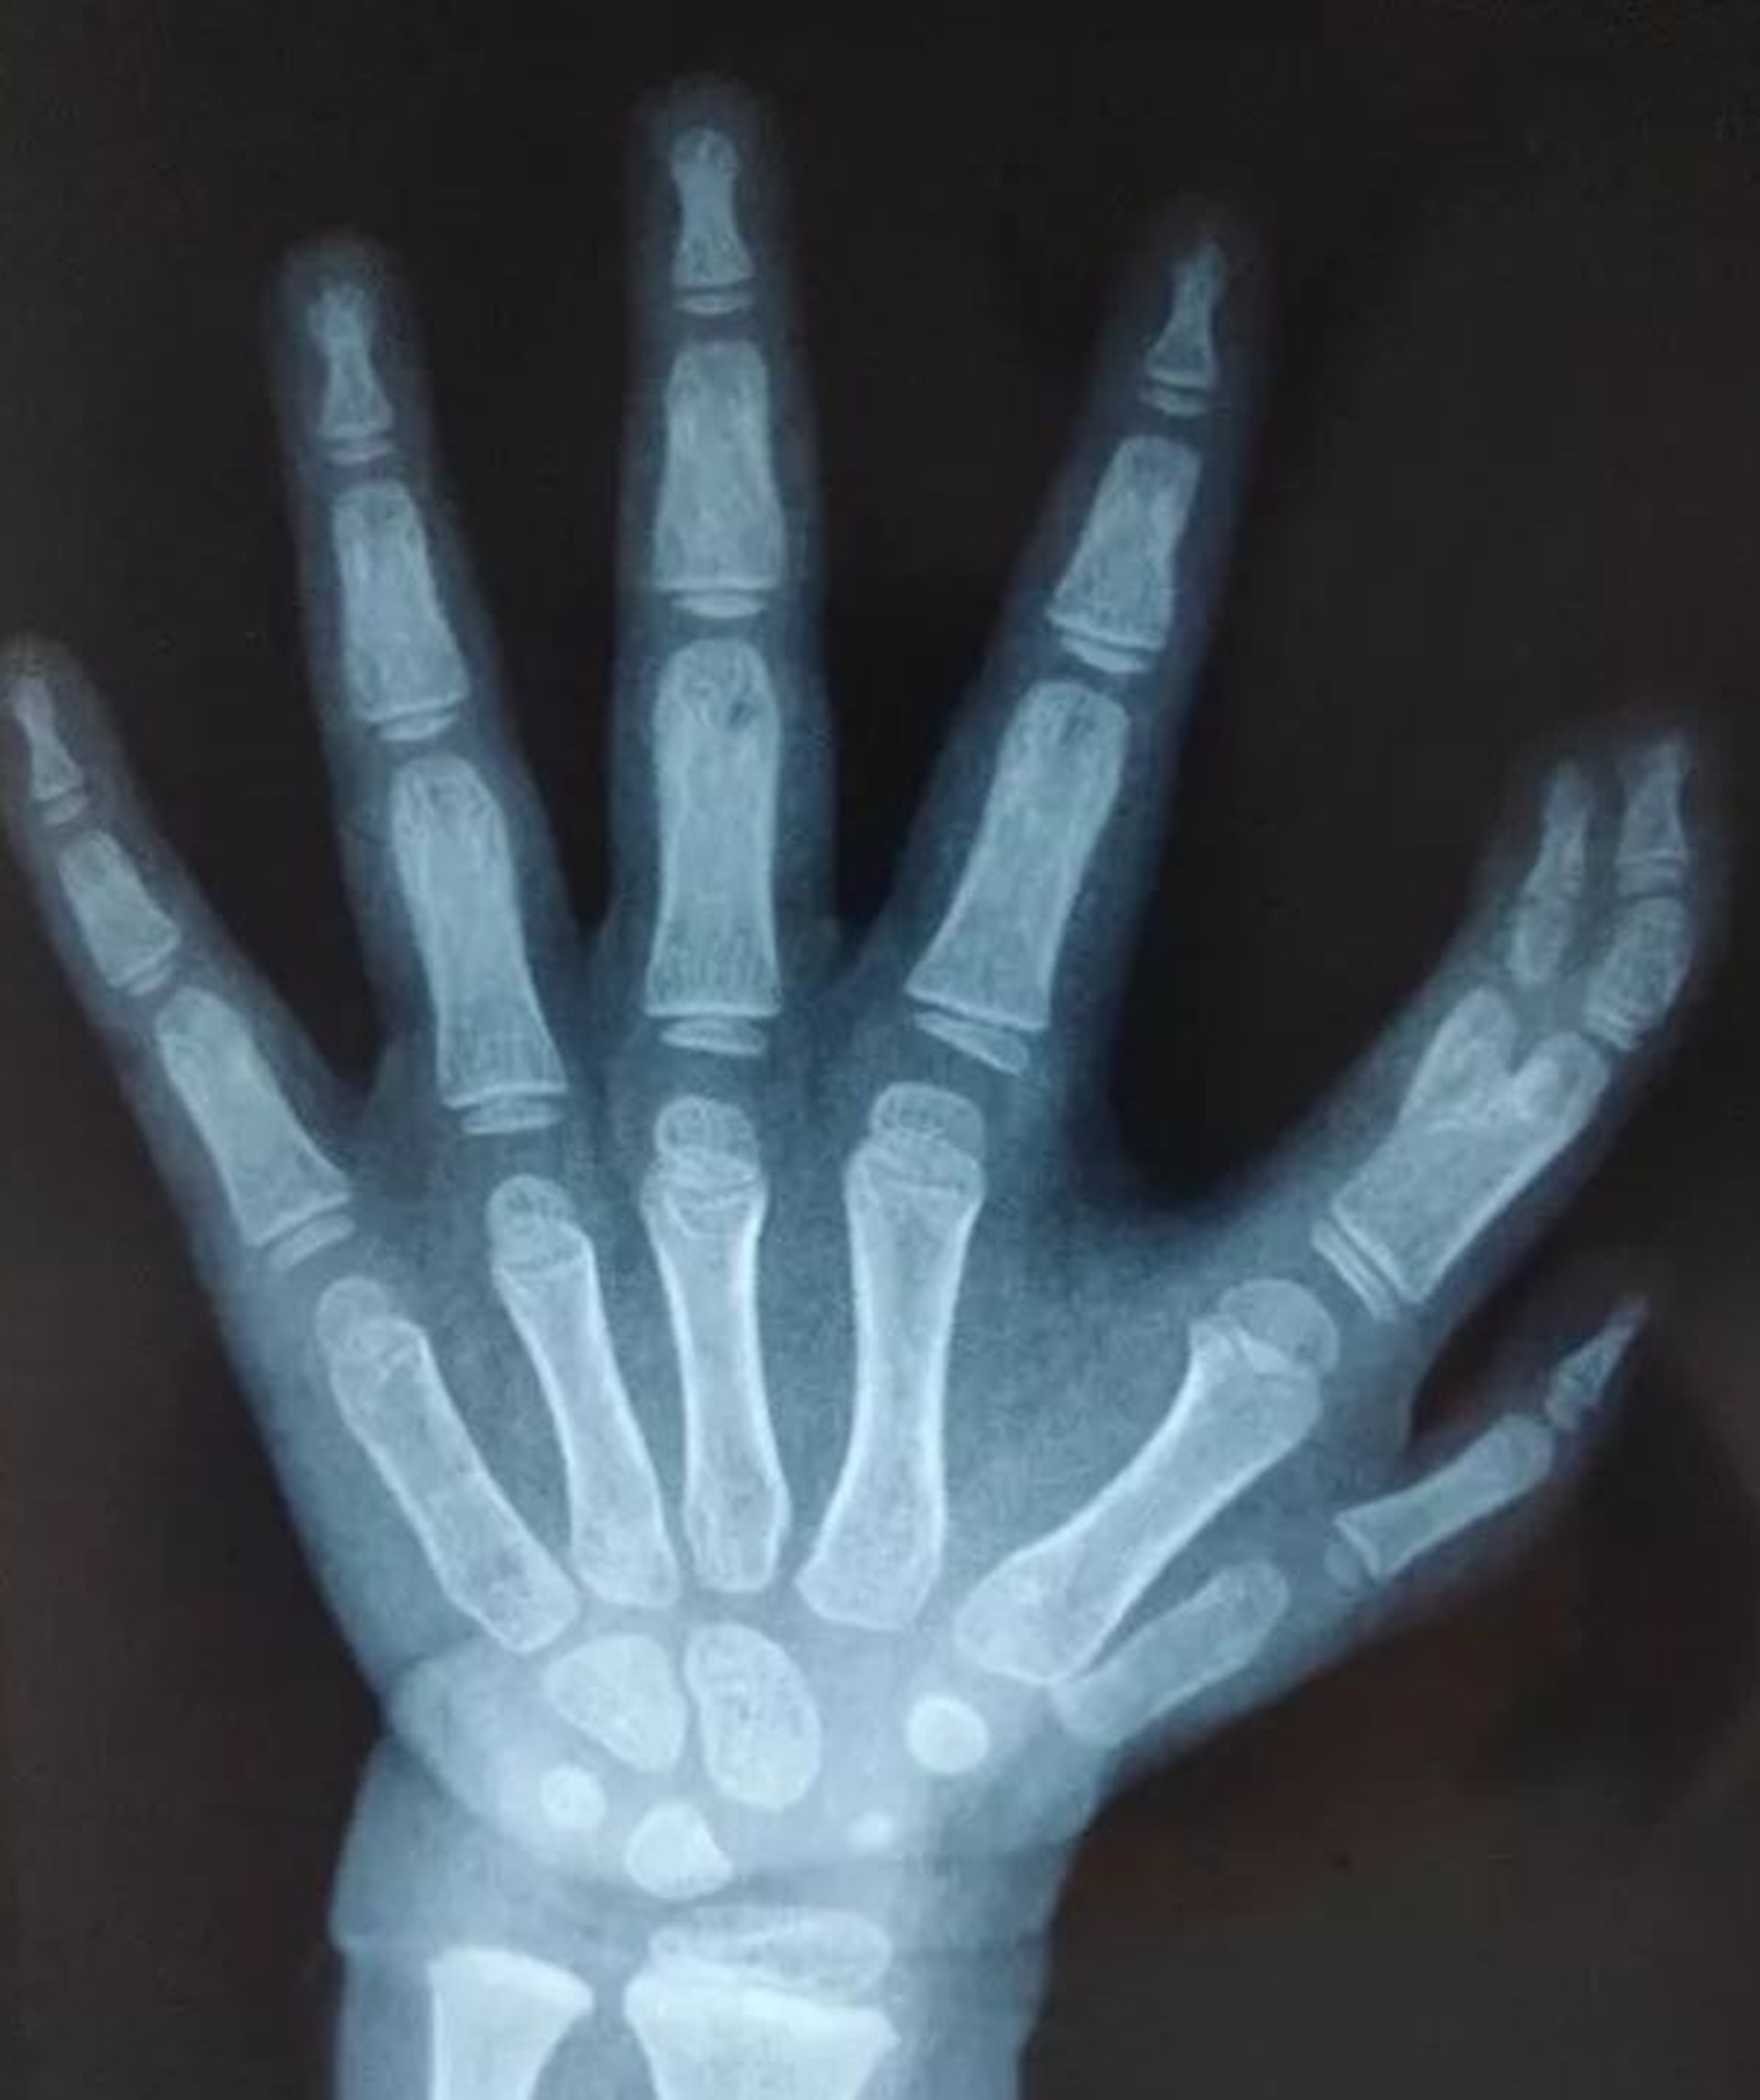 Doctors expect the girl's fingers to develop normally. Credit: Asiawire